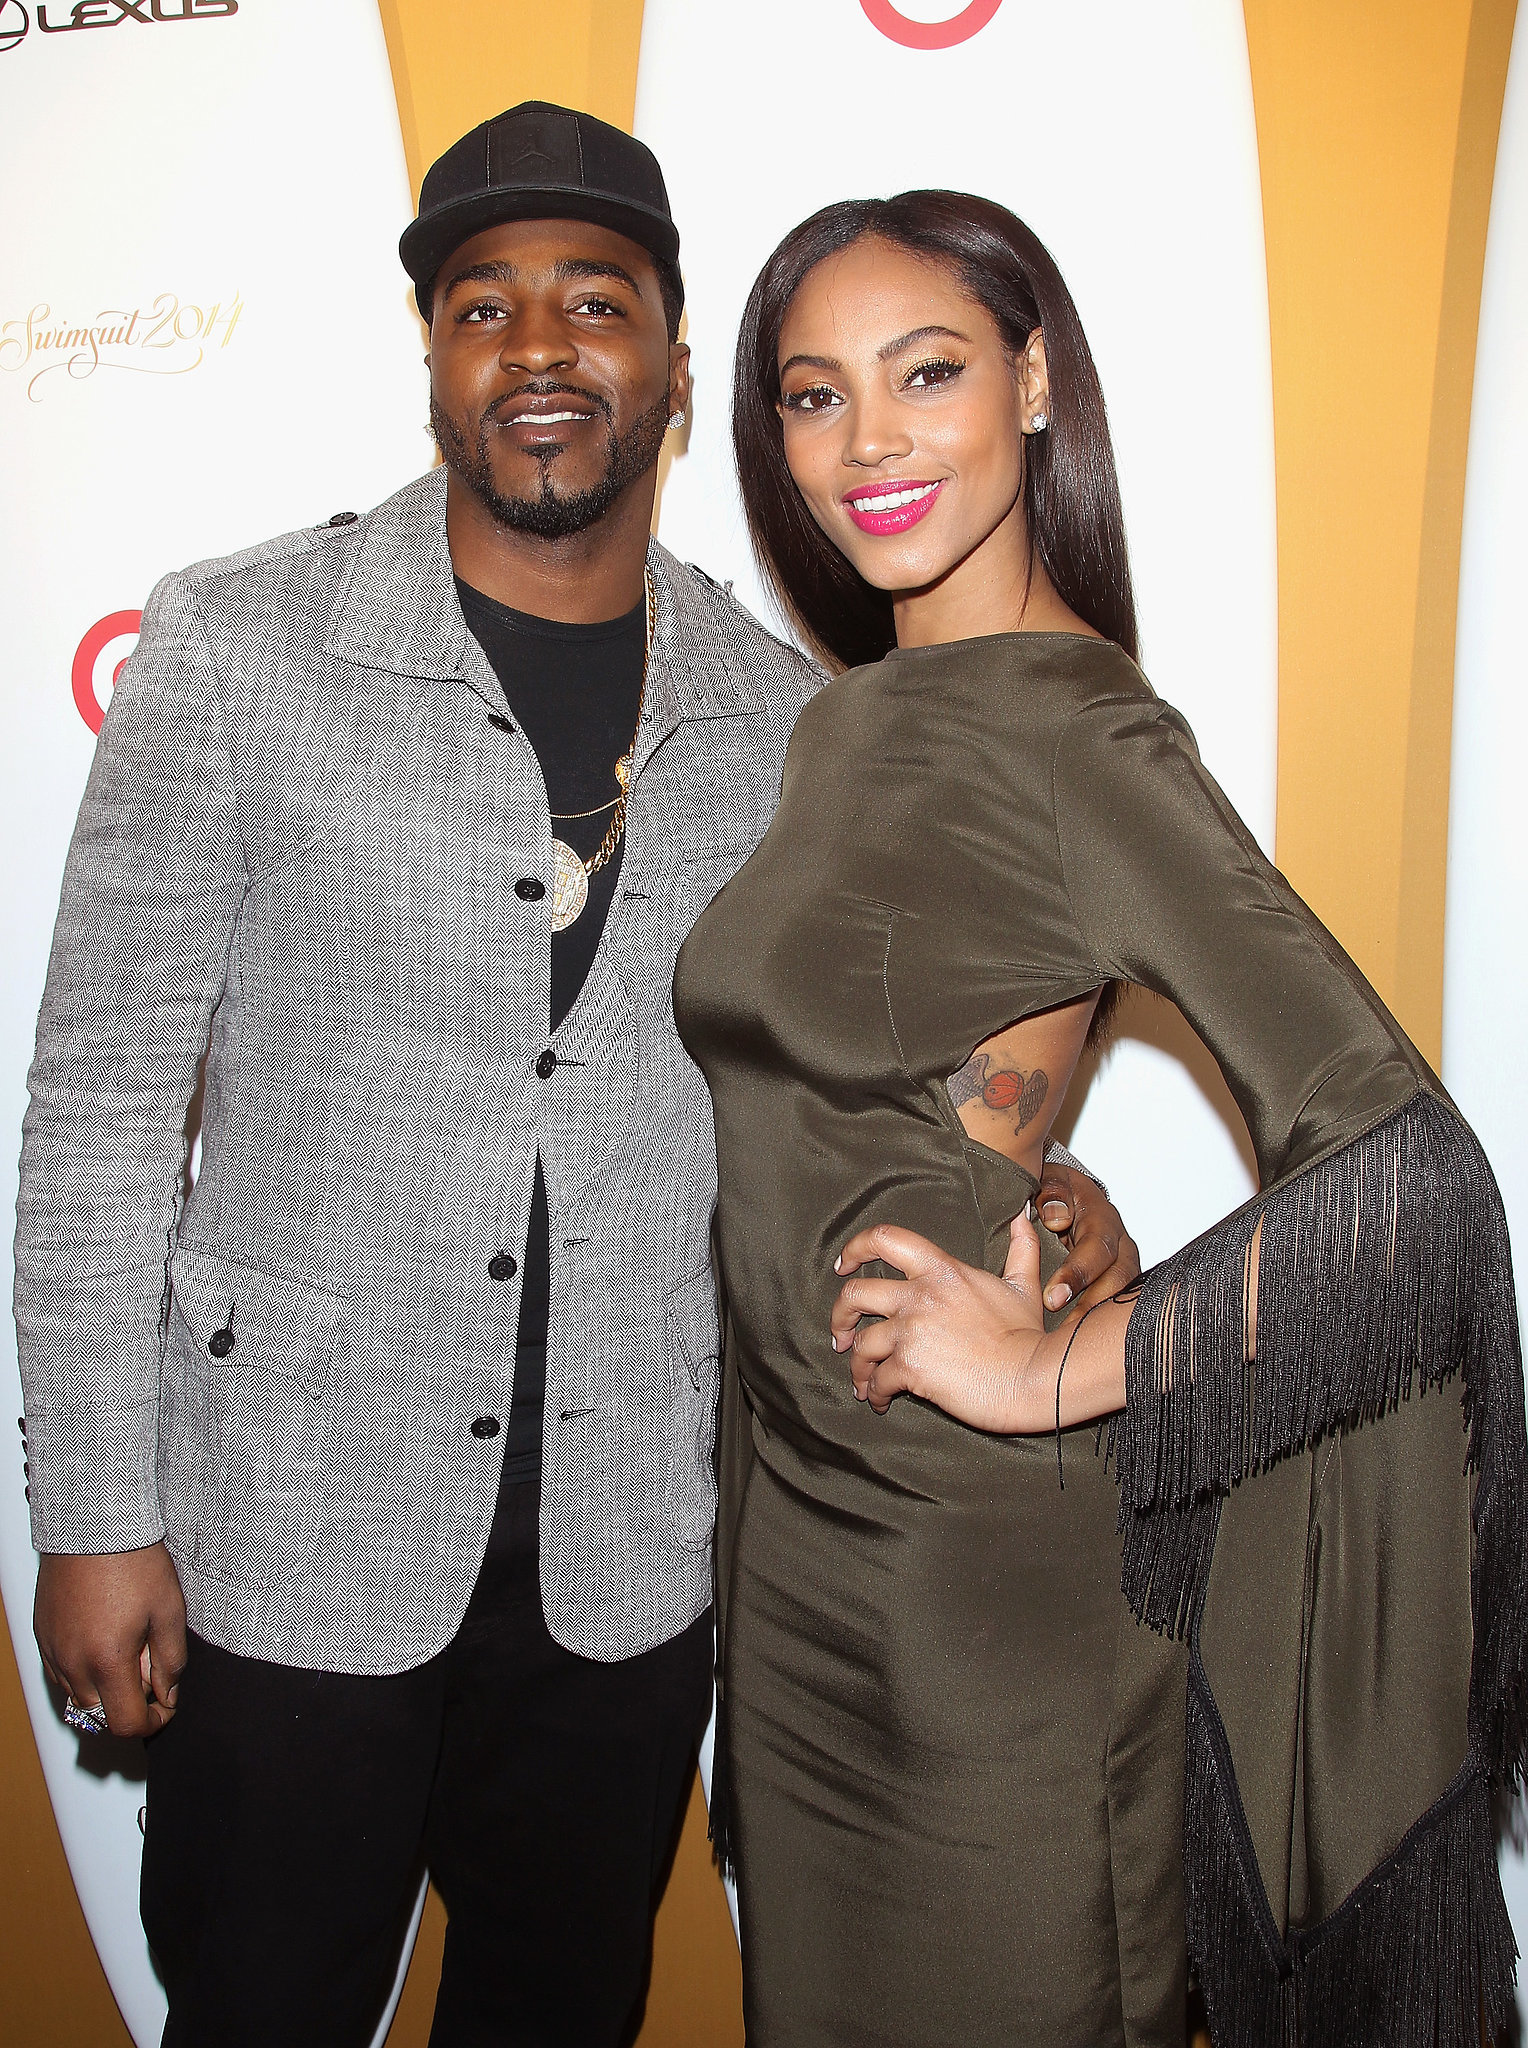 New York Giants footballer Hakeem Nicks and Sports Illustrated model Ariel Meredith were all smiles.